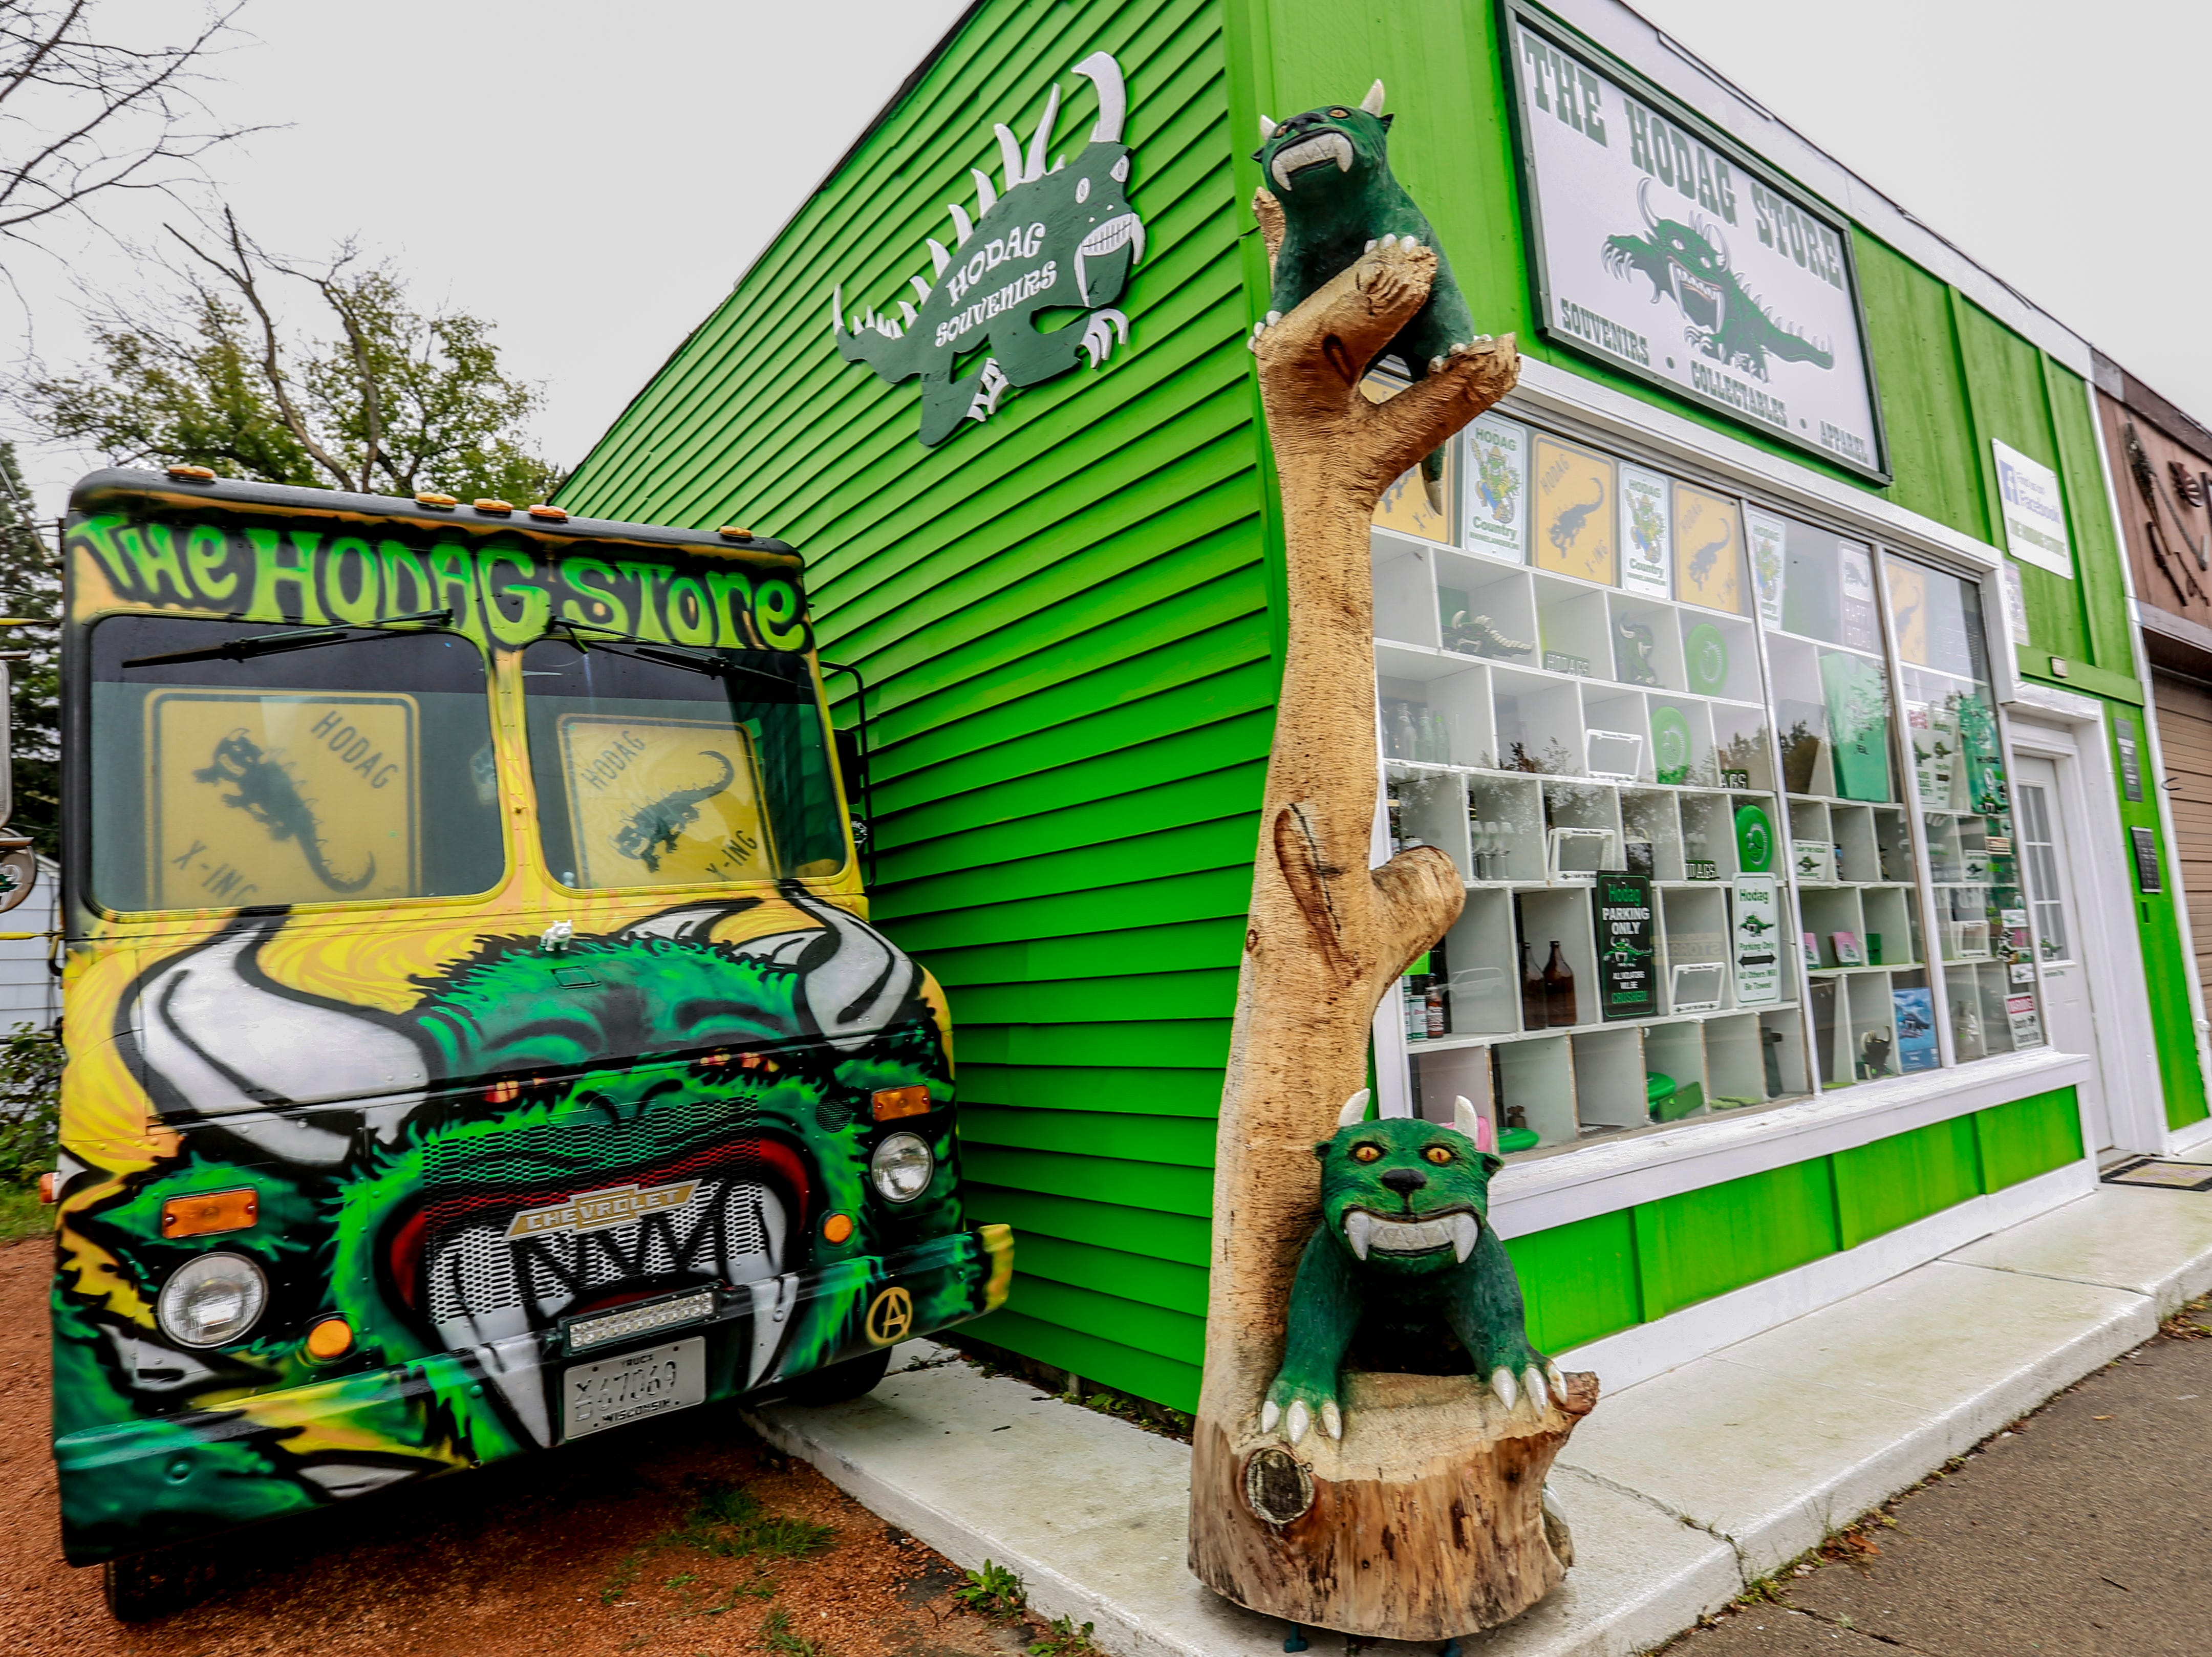 Hodag creature sculptures and images display Tuesday, Sept. 25, 2018, at The Hodag Store in Rhinelander, Wis.